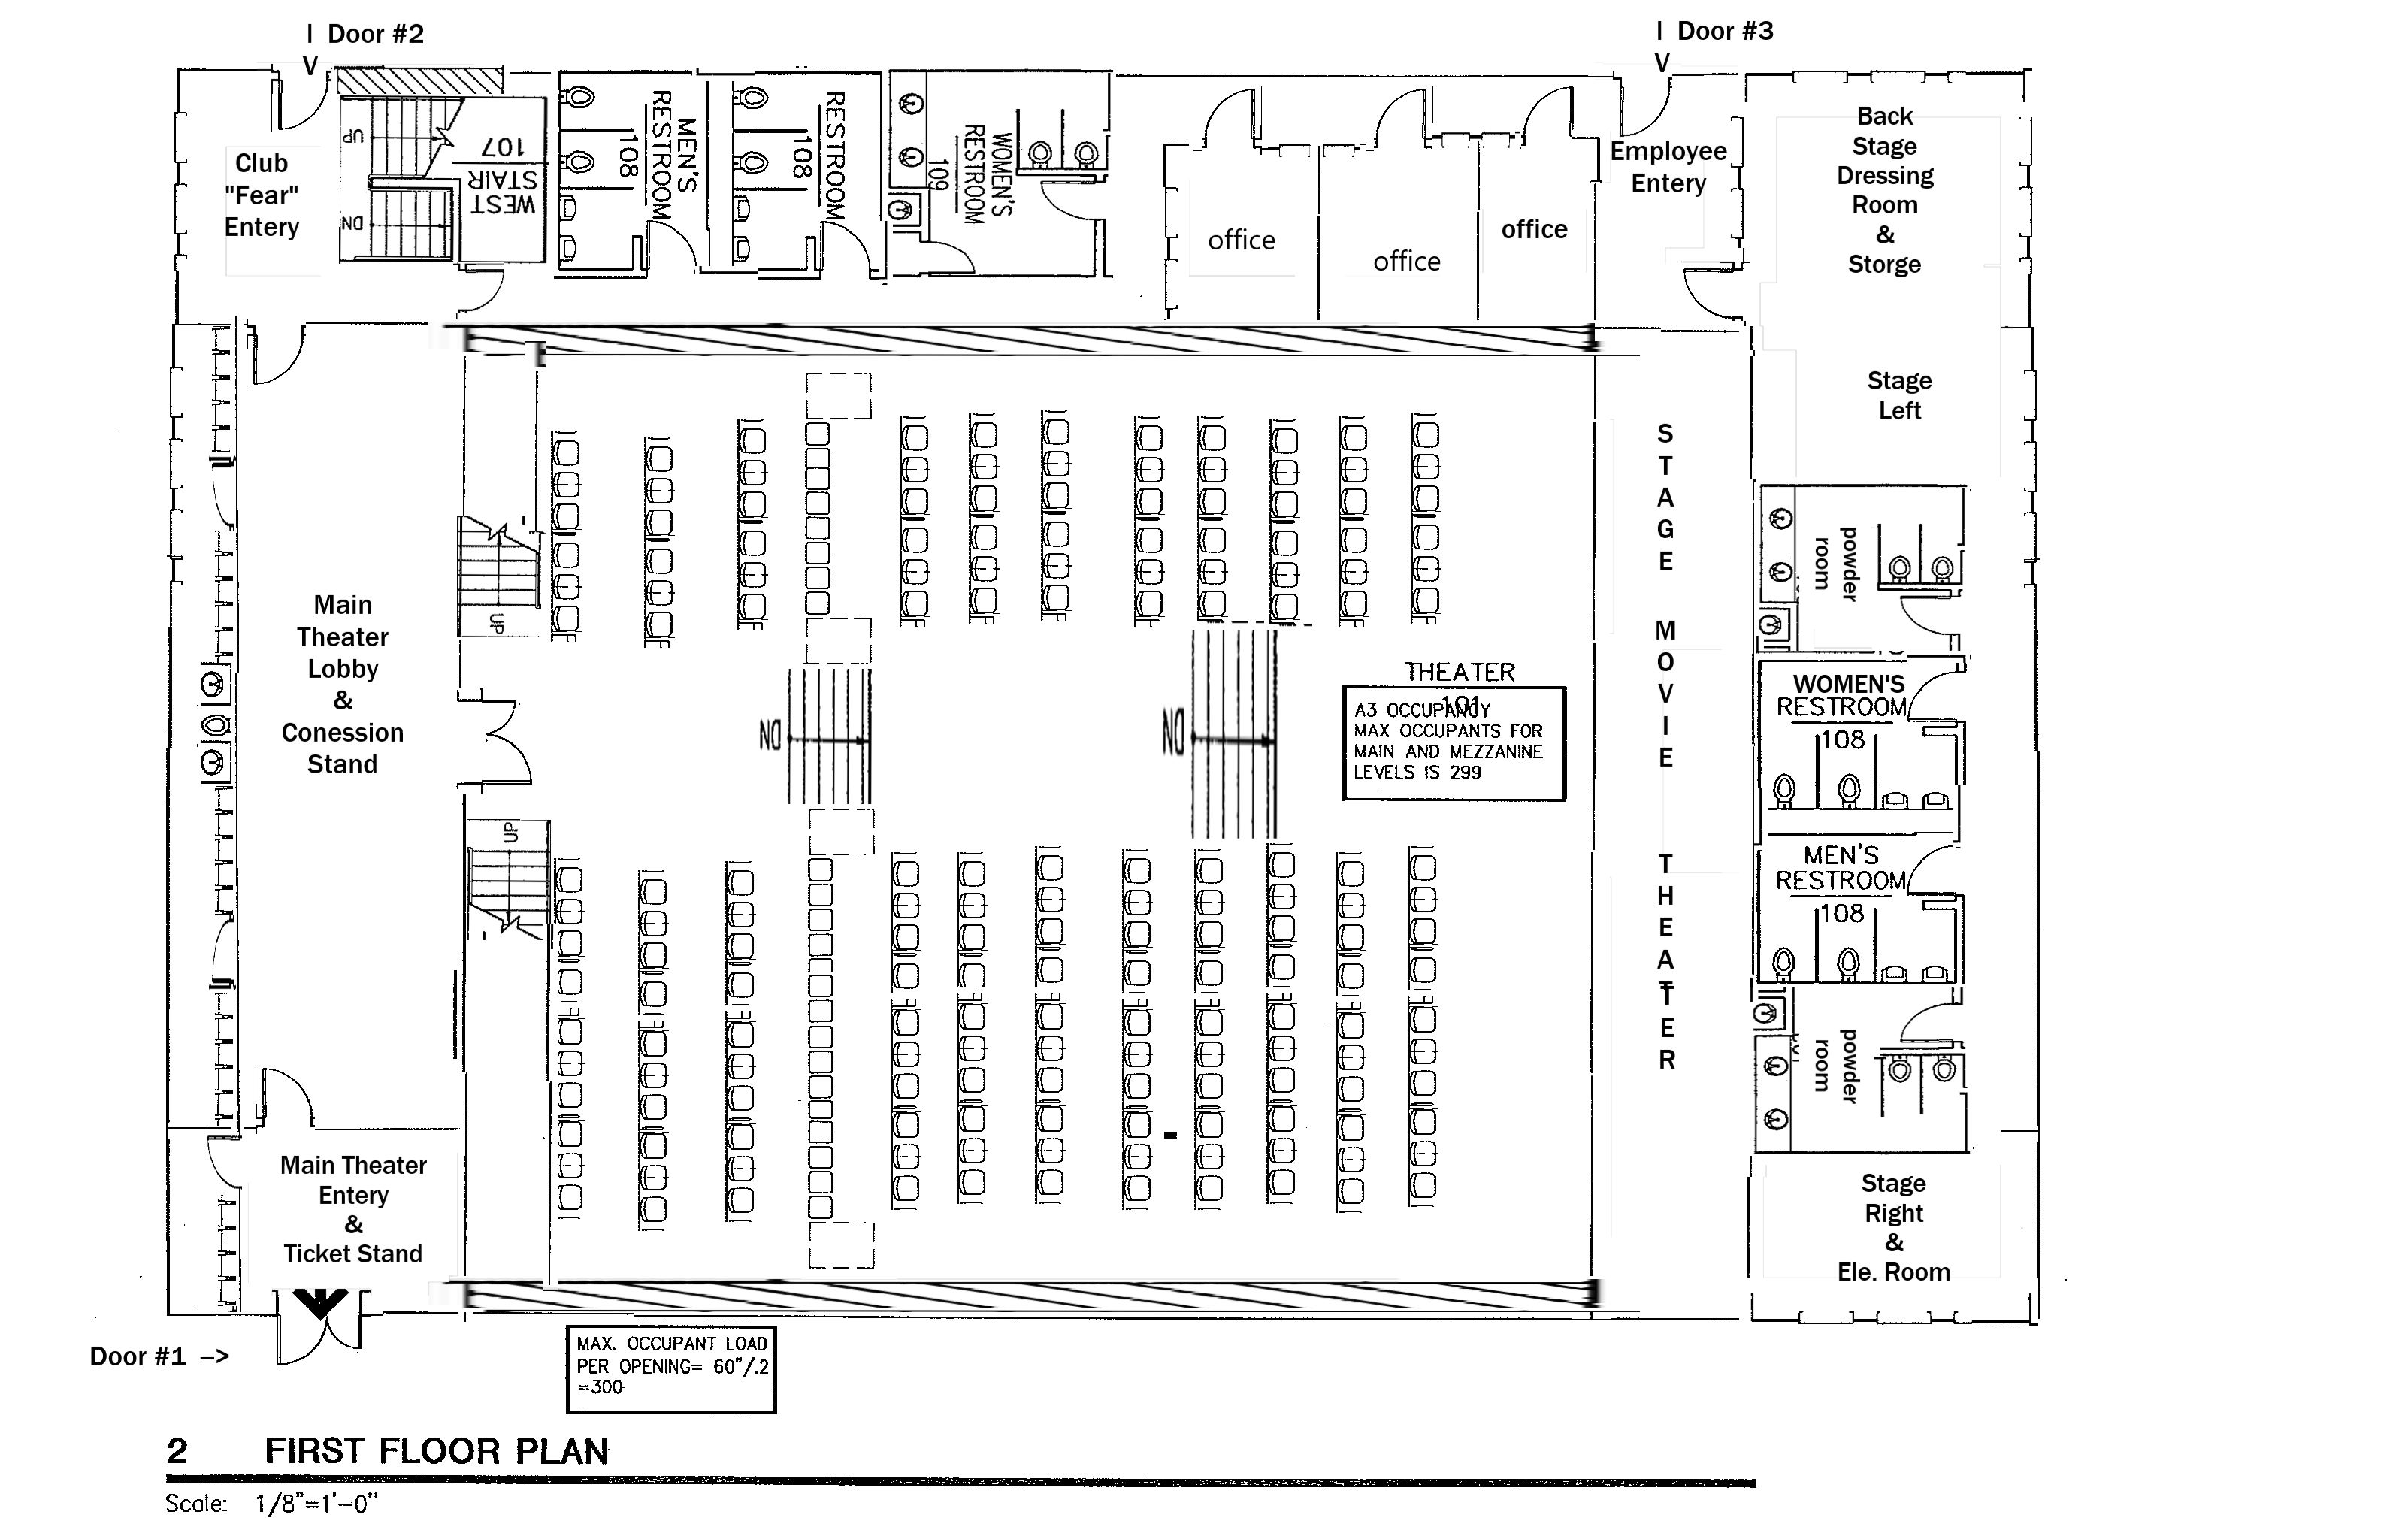 Movie-Theater-Main-Floor-Plan.png